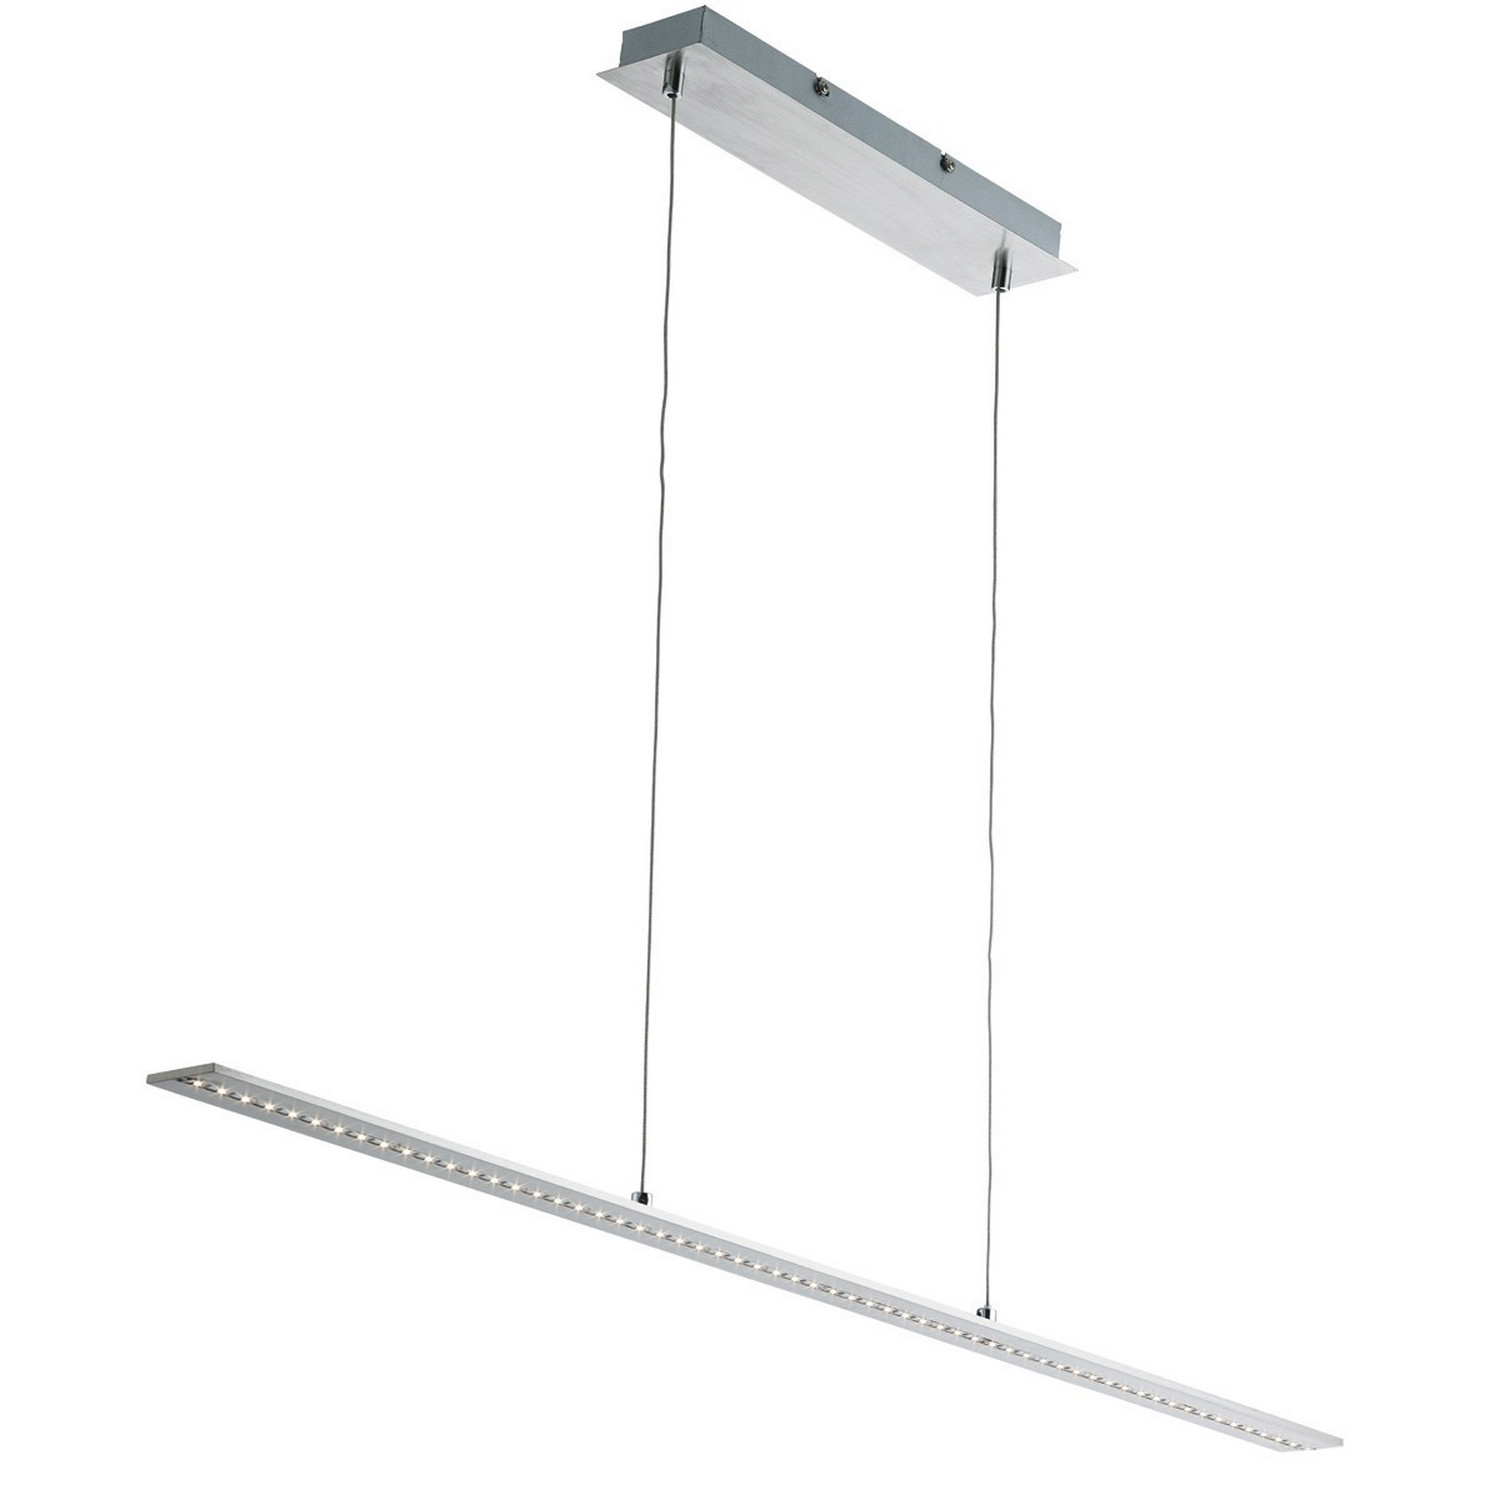 Details about satin silver led straight bar light ceiling fitting home lighting clear glass